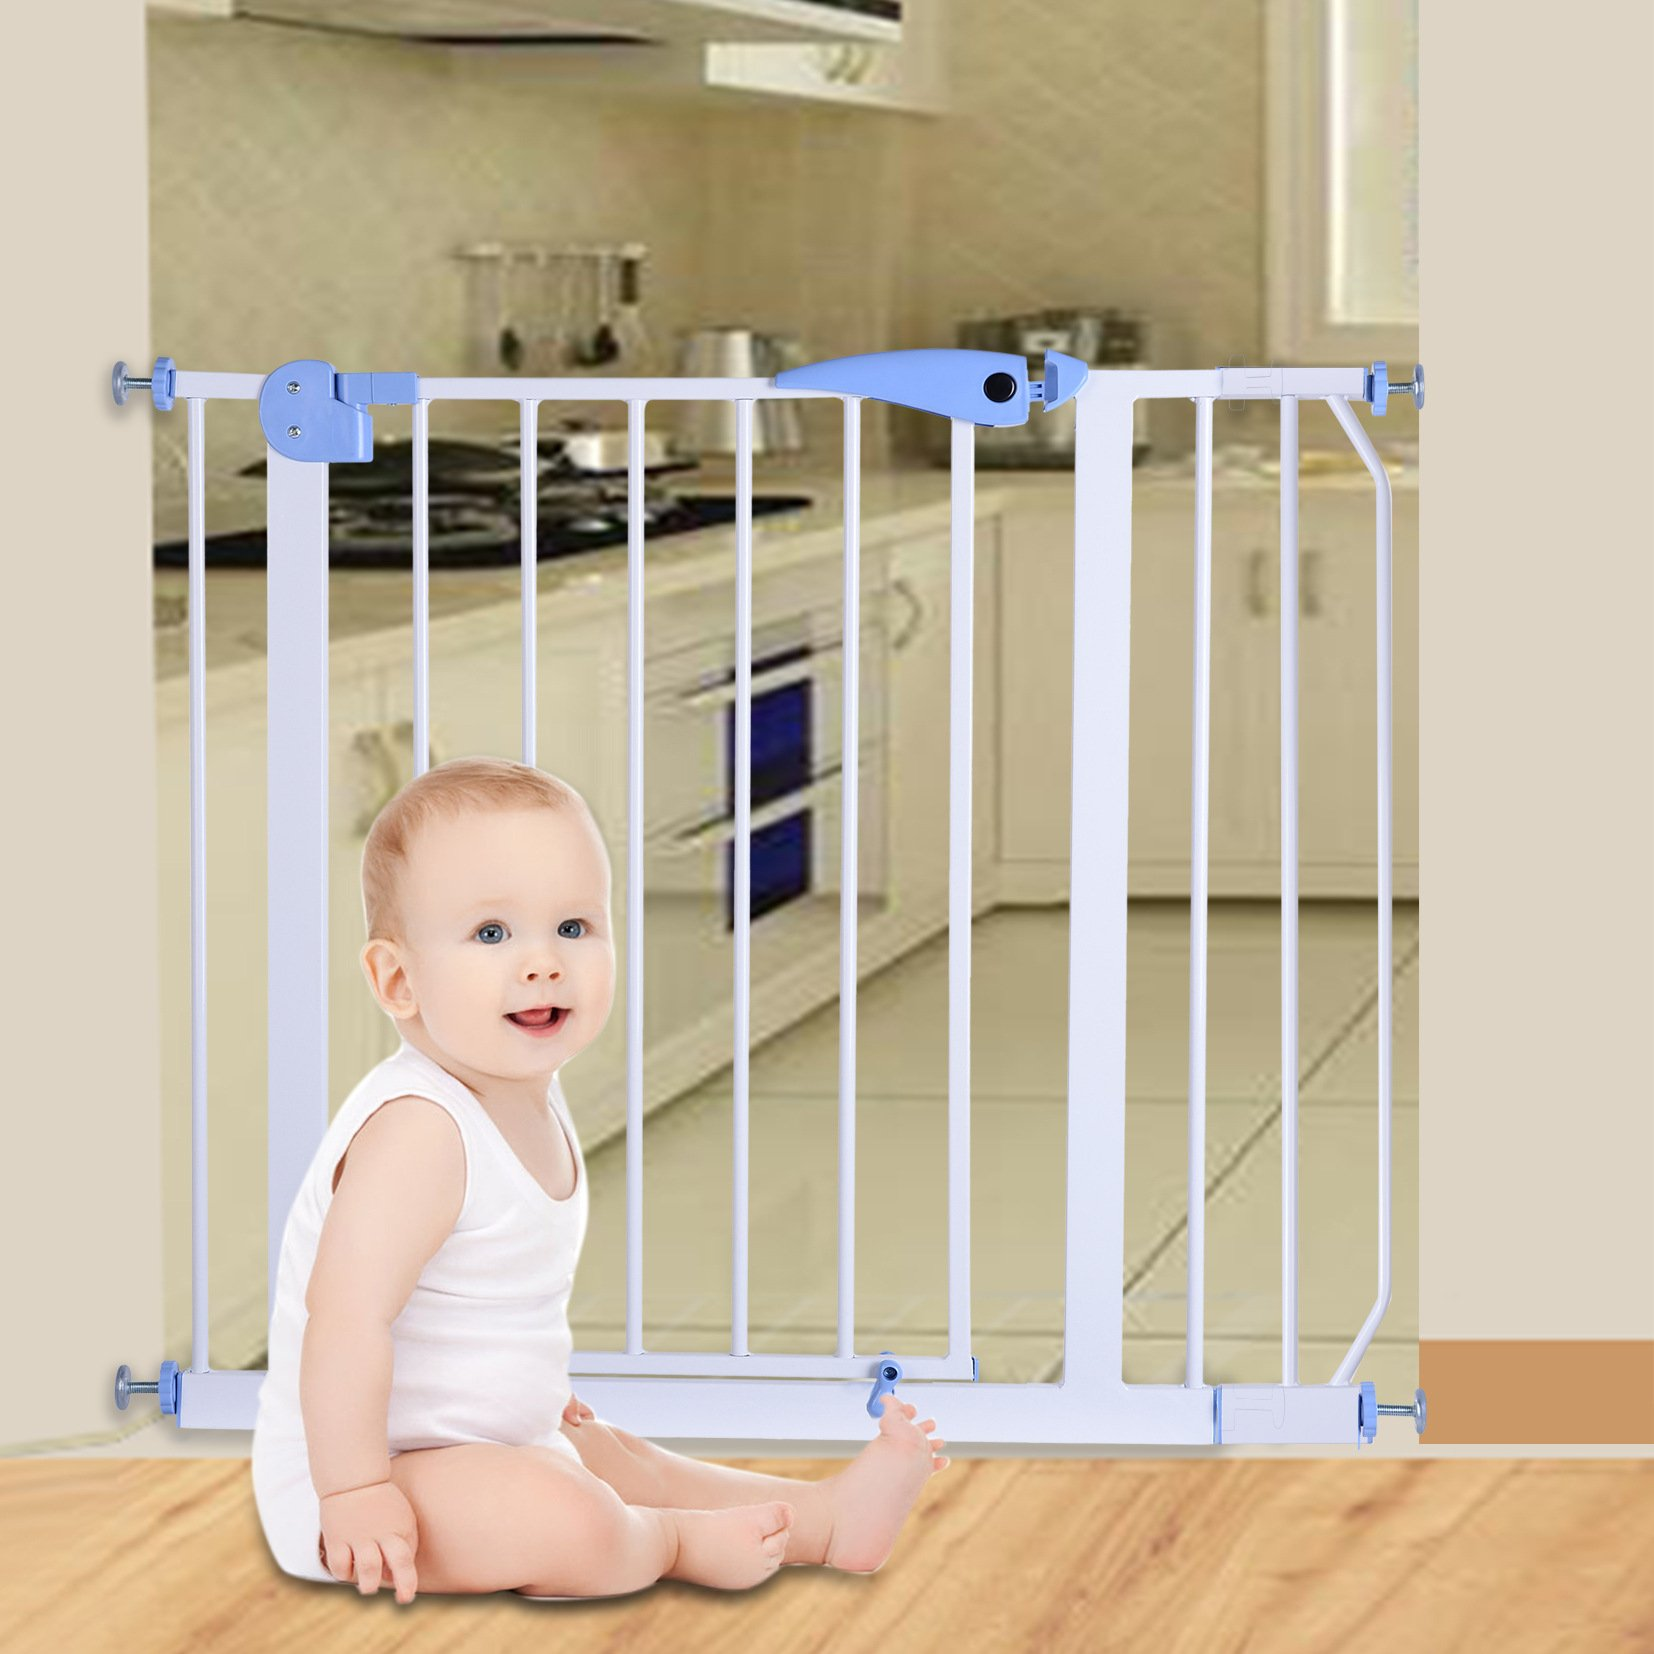 USA Youhome Easy Step Walk Thru Gate, White, Fits Spaces between 29'' and 39'' Wide